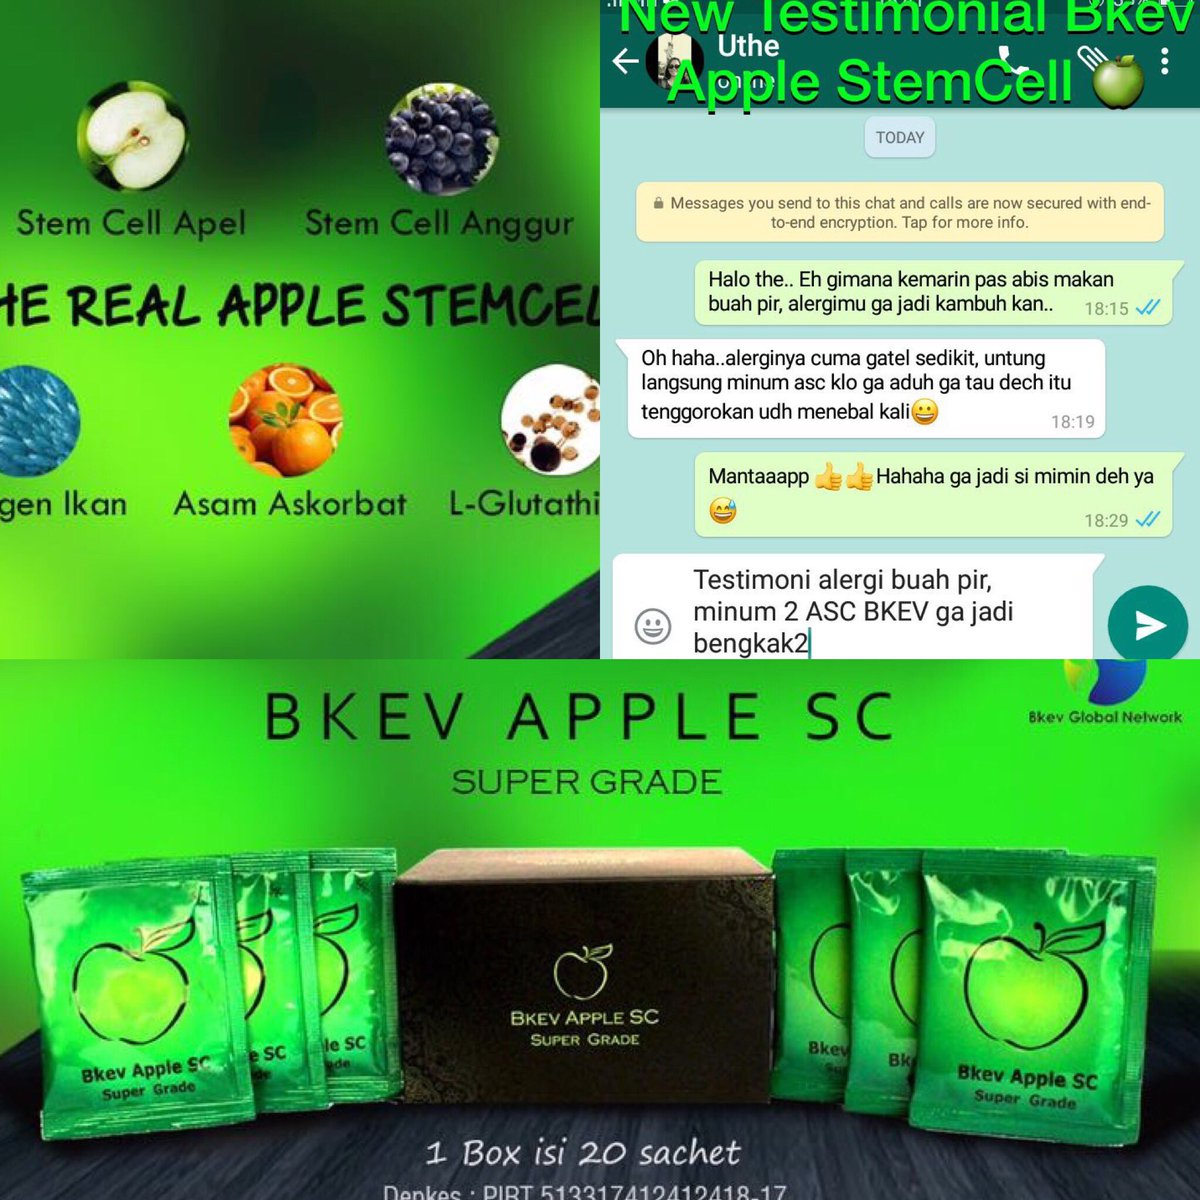 Applestemcell Hashtag On Twitter Applesc Stemcell Apple Biogreen 0 Replies Retweets Likes